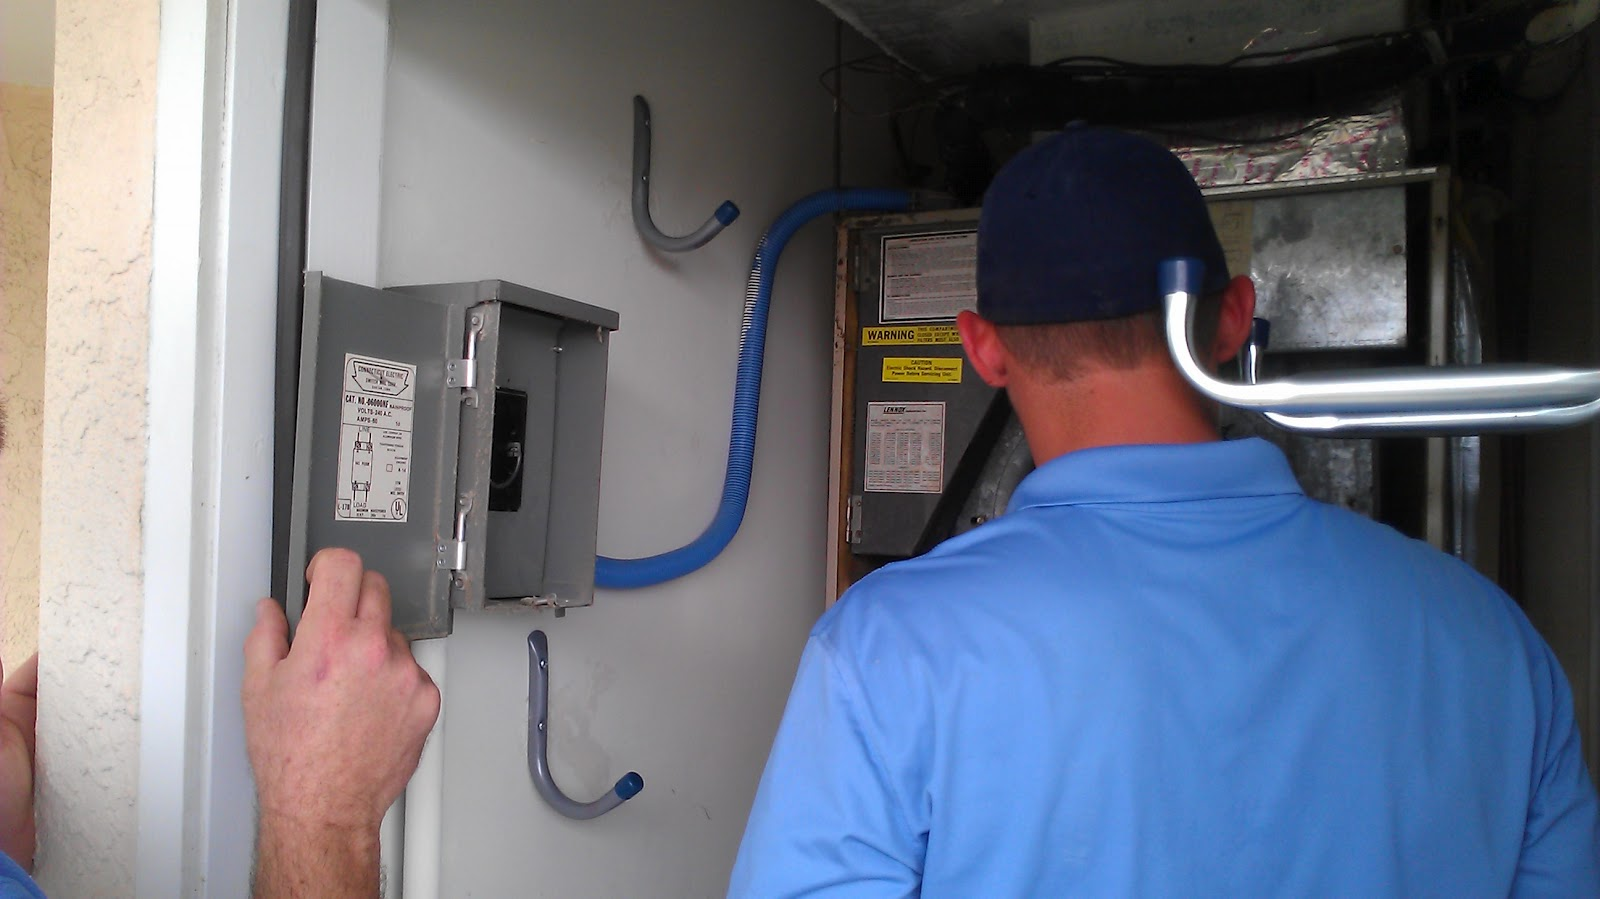 Commercial Hvac Panama City Beach Fl Paramount Heating Cooling Llc Wiring Bay And Walton County Partner